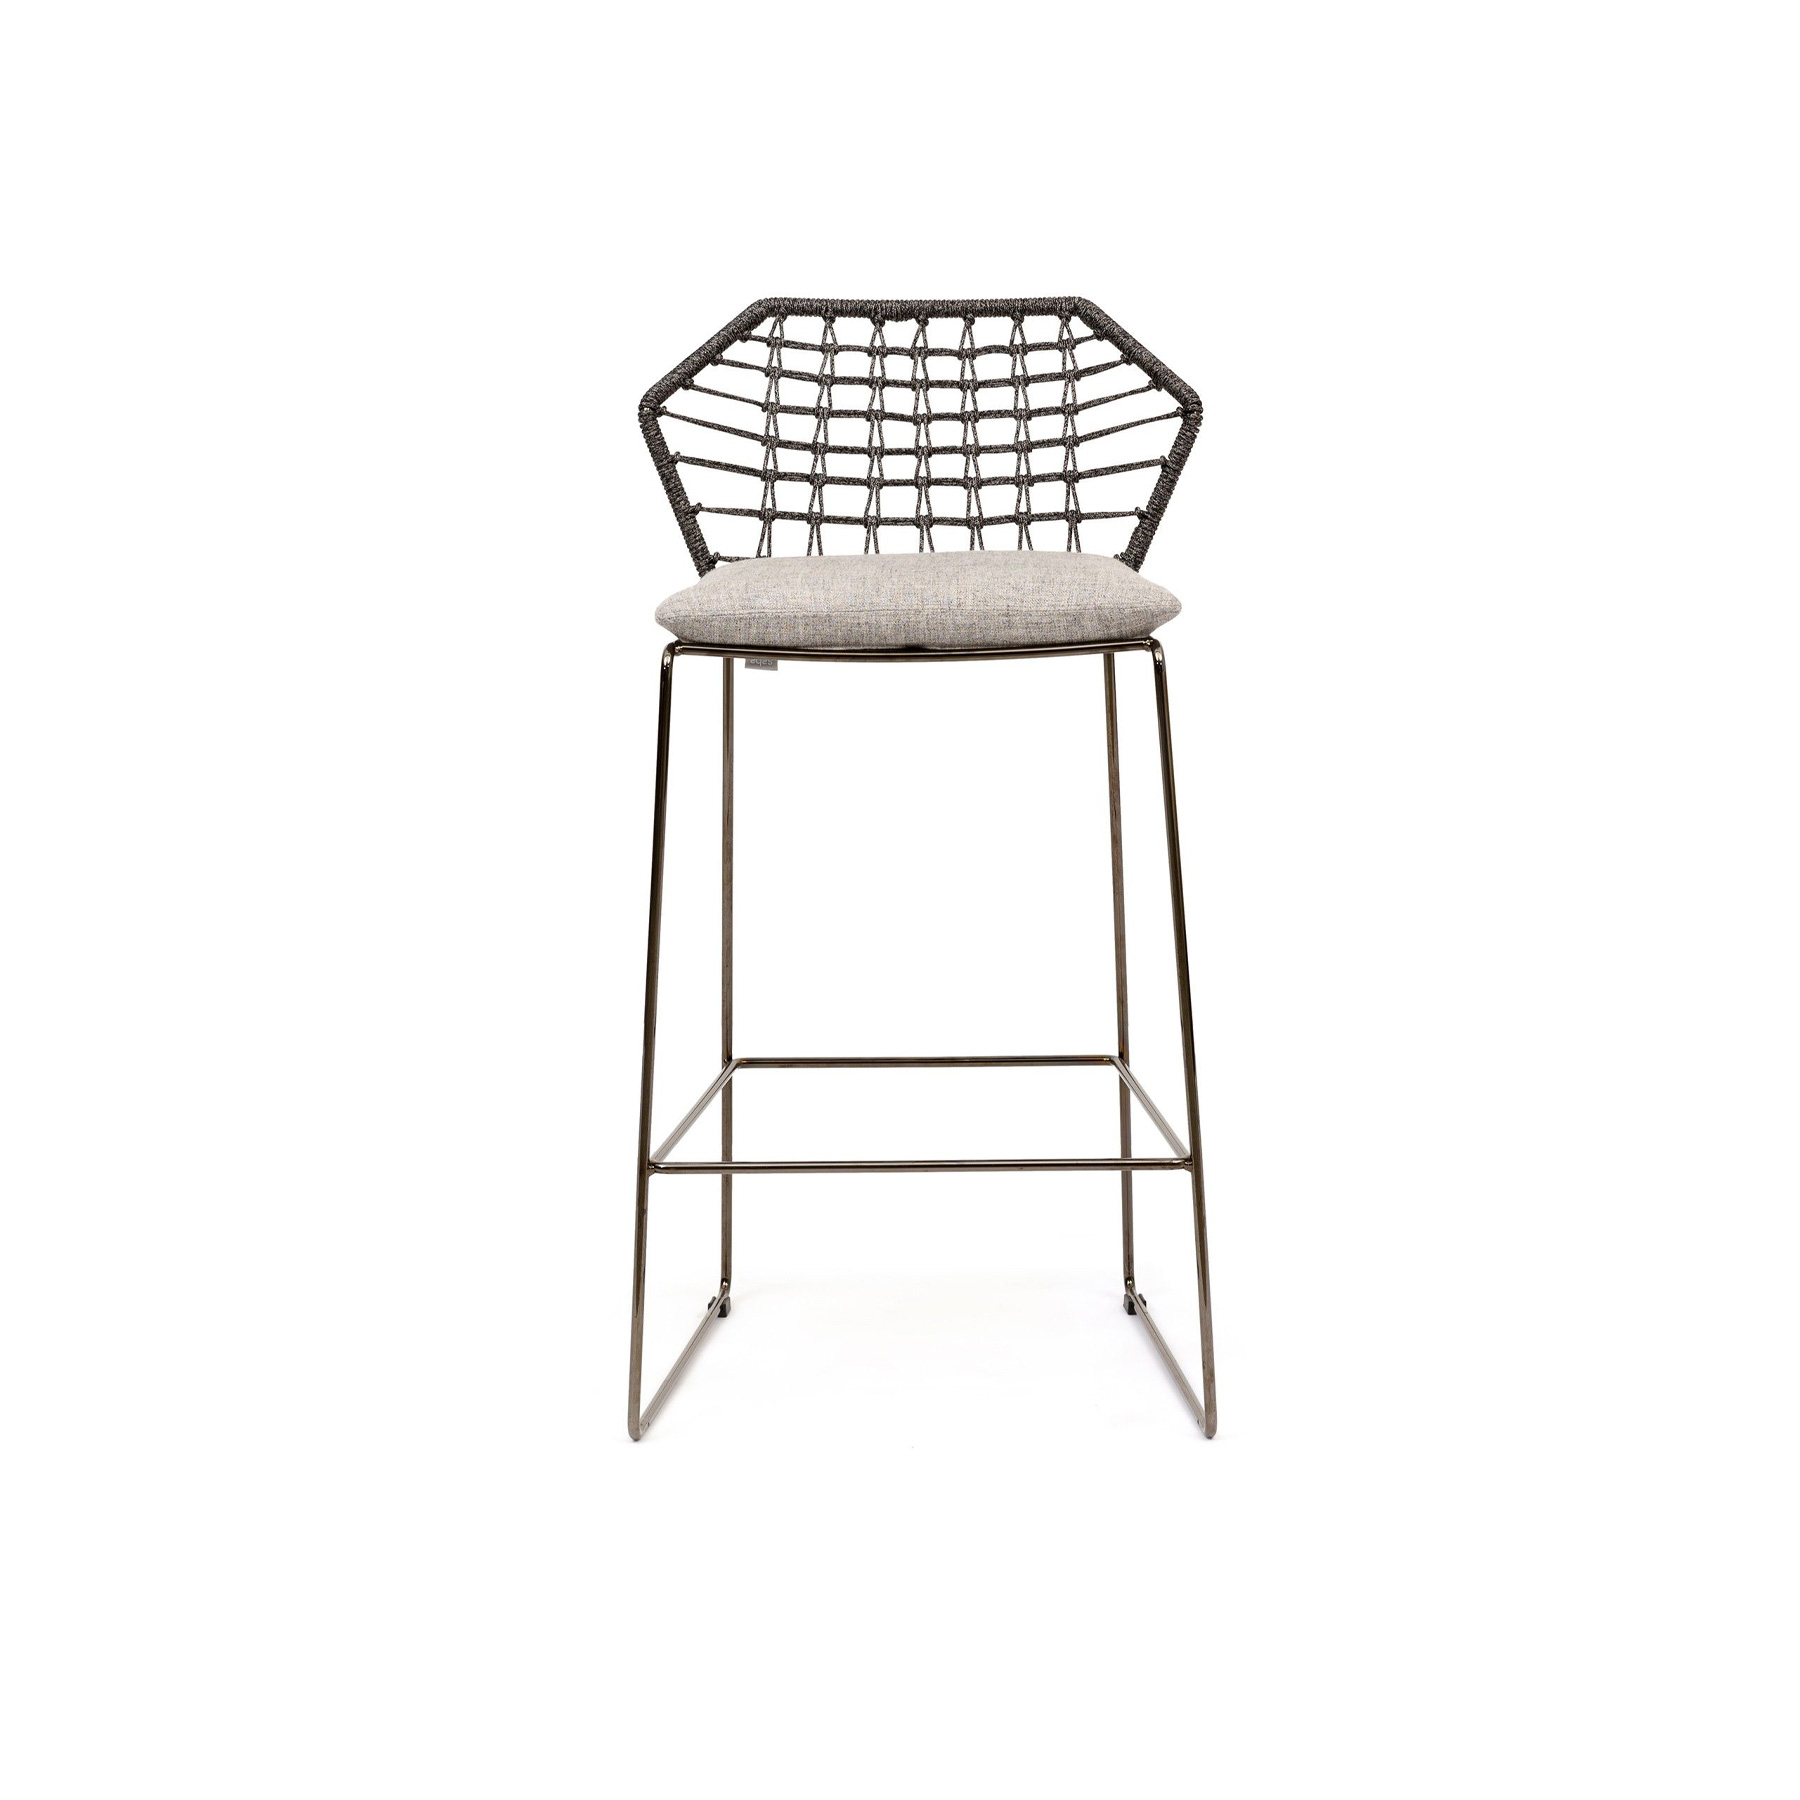 New York Soleil Garden High Stool - New York Soleil is a high fabric garden stool, part of the homonymous collection.  The New York Soleil outdoor collection is a line of exclusive woven seating made entirely by hand. New York Soleil is the product of careful research into materials and the desire to maintain the unique original design. Woven nautical cords of different colors softly cover the painted metal rod structure. The ergonomic cushion is covered in a quick-drying, non-absorbent technical fabric, and its superior performance in the Martindale test guarantees abrasion resistance as well as hygienic breathability. In 2020 the collection adds a new element: the Lounge Armchair.  New York Soleil embodies outdoor living with a casual style and colorful charm. It is available in different blends and solid colors. The collection includes a sofa, a lounge armchair, an armchair, a pouf, a chair with or without armrests and a stool. Fully removable covers.  Materials Structure in 16 mm wire drawn for lounge armchair; in 12 mm wire drawn for sofa, armchair and pouf; in 11 mm wire drawn for chair with or without armrests and for stools. For all elements, structure is covered with plaiting of 4 mm diameter of polyester ropes. For sofa, armchair, chairs and stools, seat cushion is filled with a special 30 water-draining polyurethane, covered with polyester fiber 300gr/sqm on 100% polyester lining. Lounge armchair's seat cushion is made with flexible glass fiber slats inserted in the core of variable density polyurethane foam, covered with 600 gr/sqm polyester fiber and clothed with water-repellent heat-sealed fabric. Back and arm rests cushions are in polyester fiber in TNT fabric cover, clothed with water-repellent heat-sealed for fabric provided with a breathable band. | Matter of Stuff